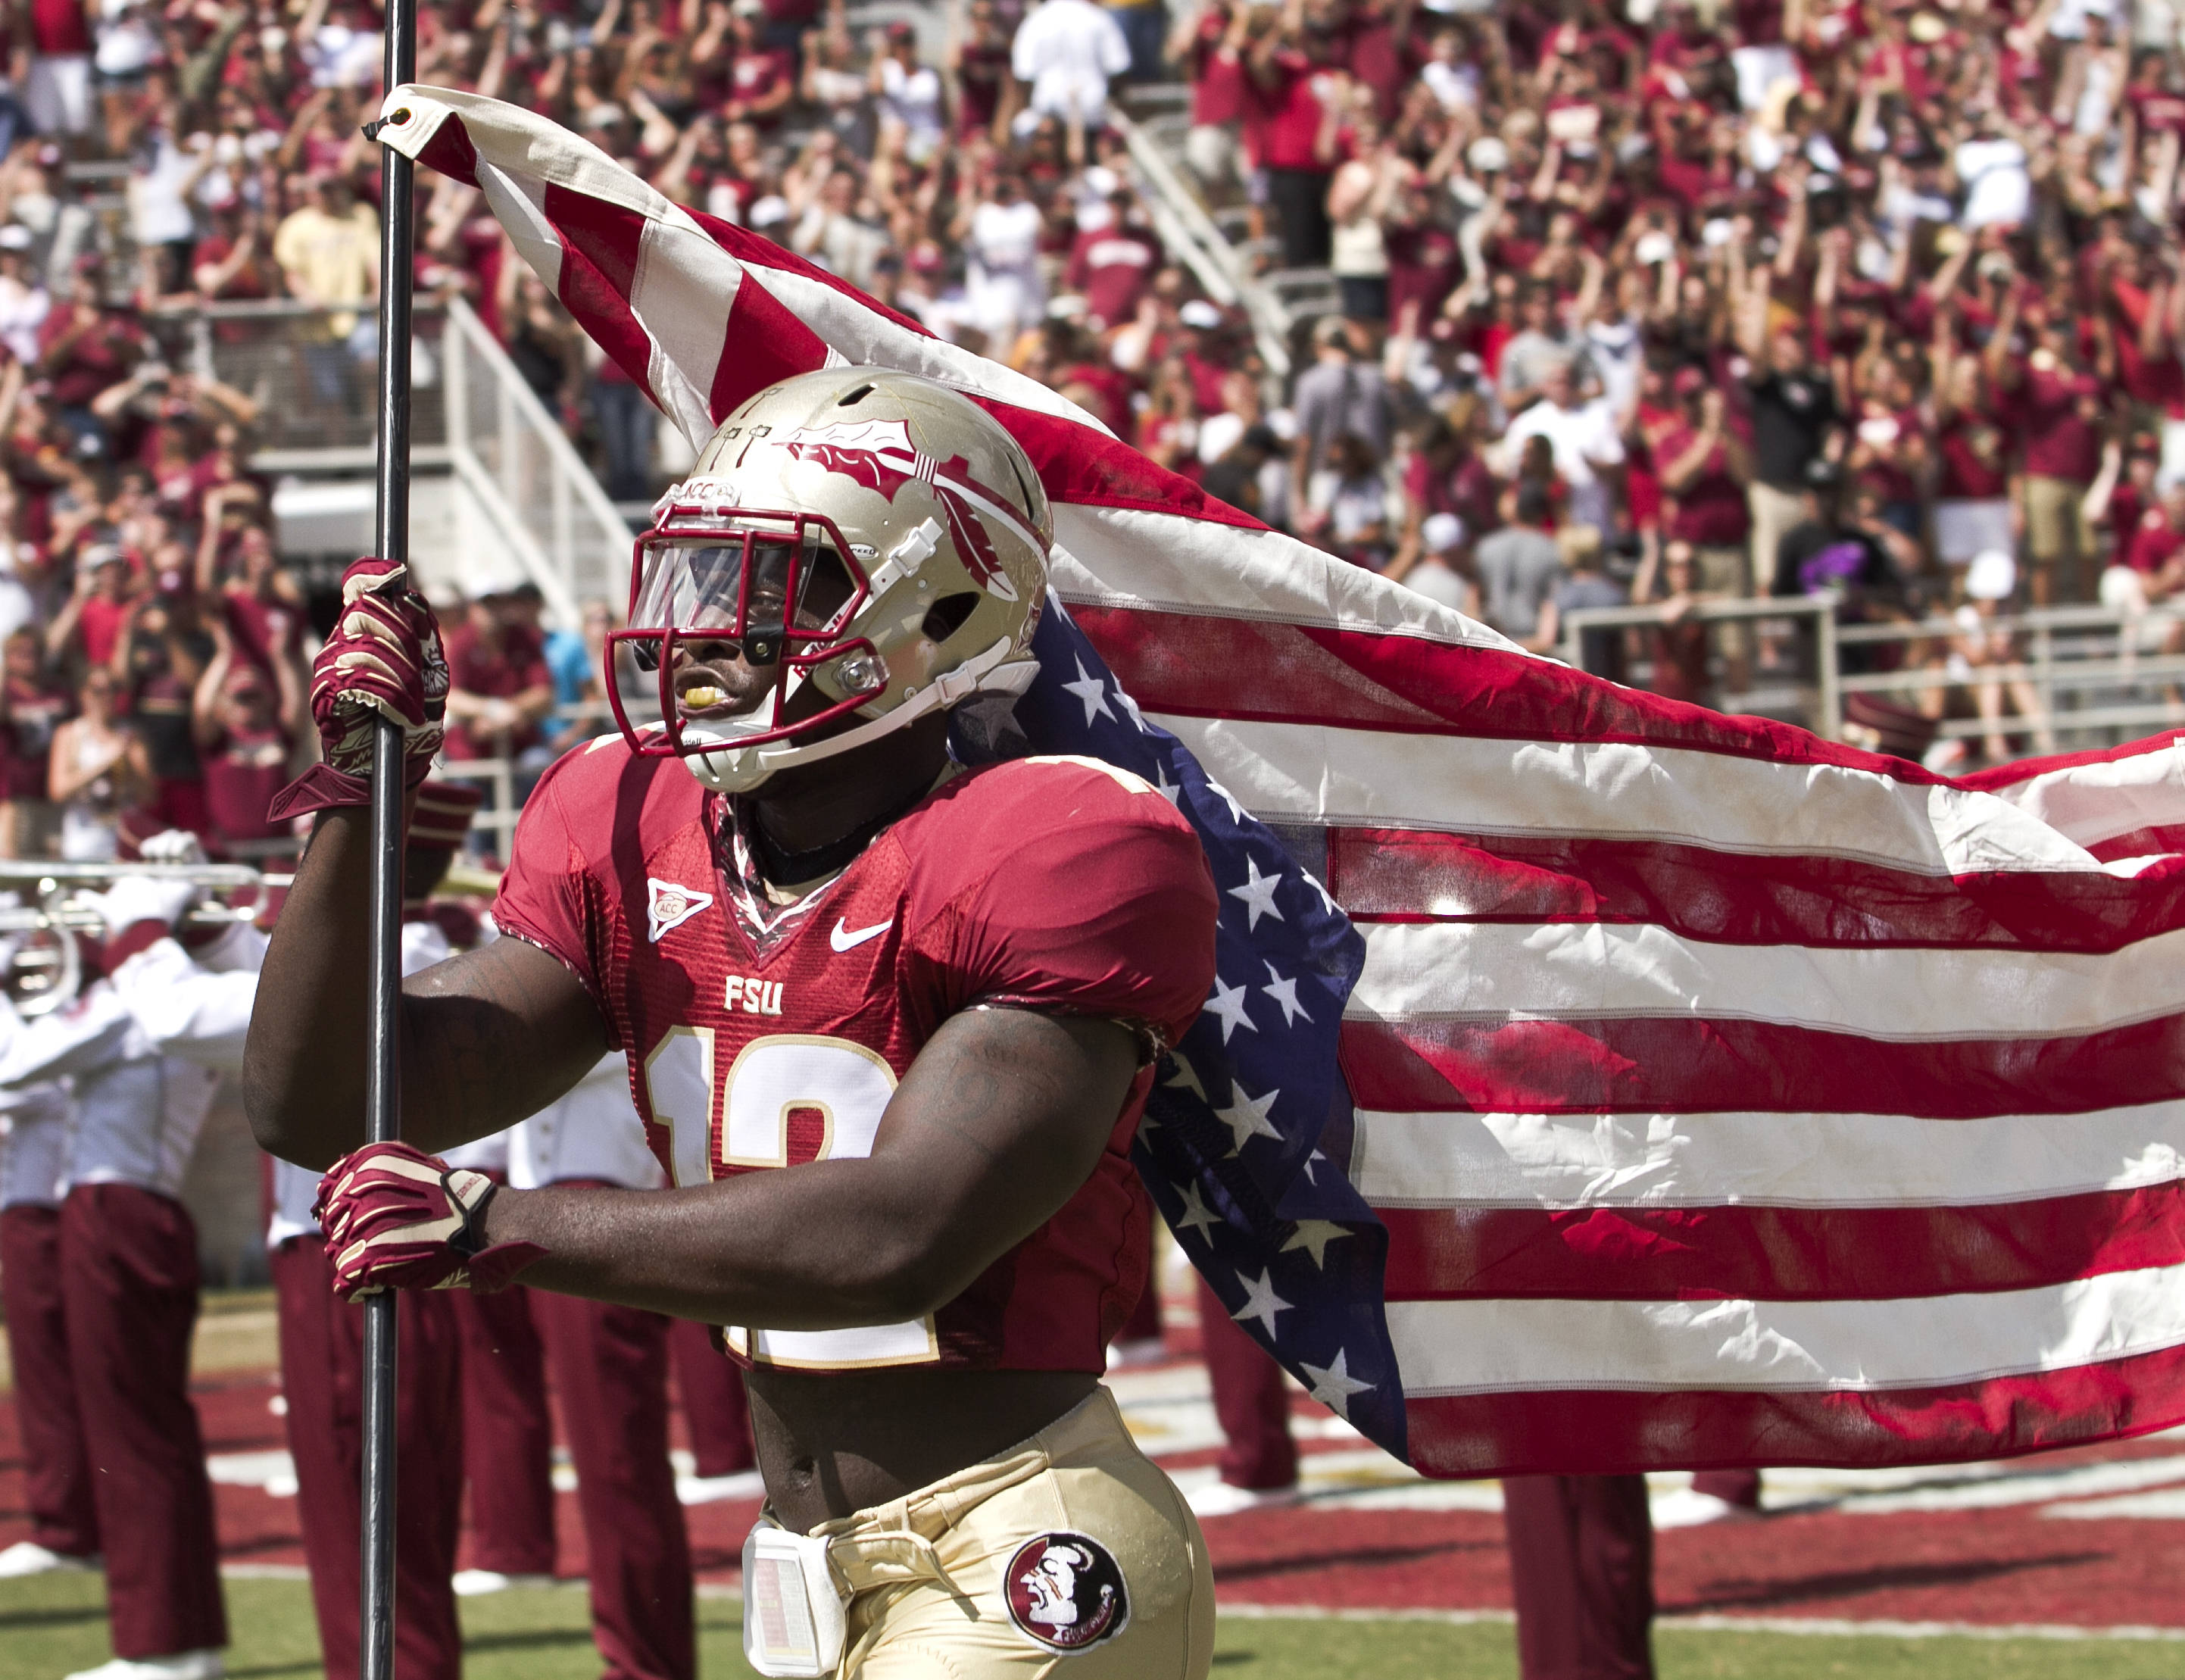 Reggie Northrup (12) carrying the flag leading FSU out on the field for military appreciation day, FSU vs Wake Forest, 9/15/12 (Photo by Steve Musco)